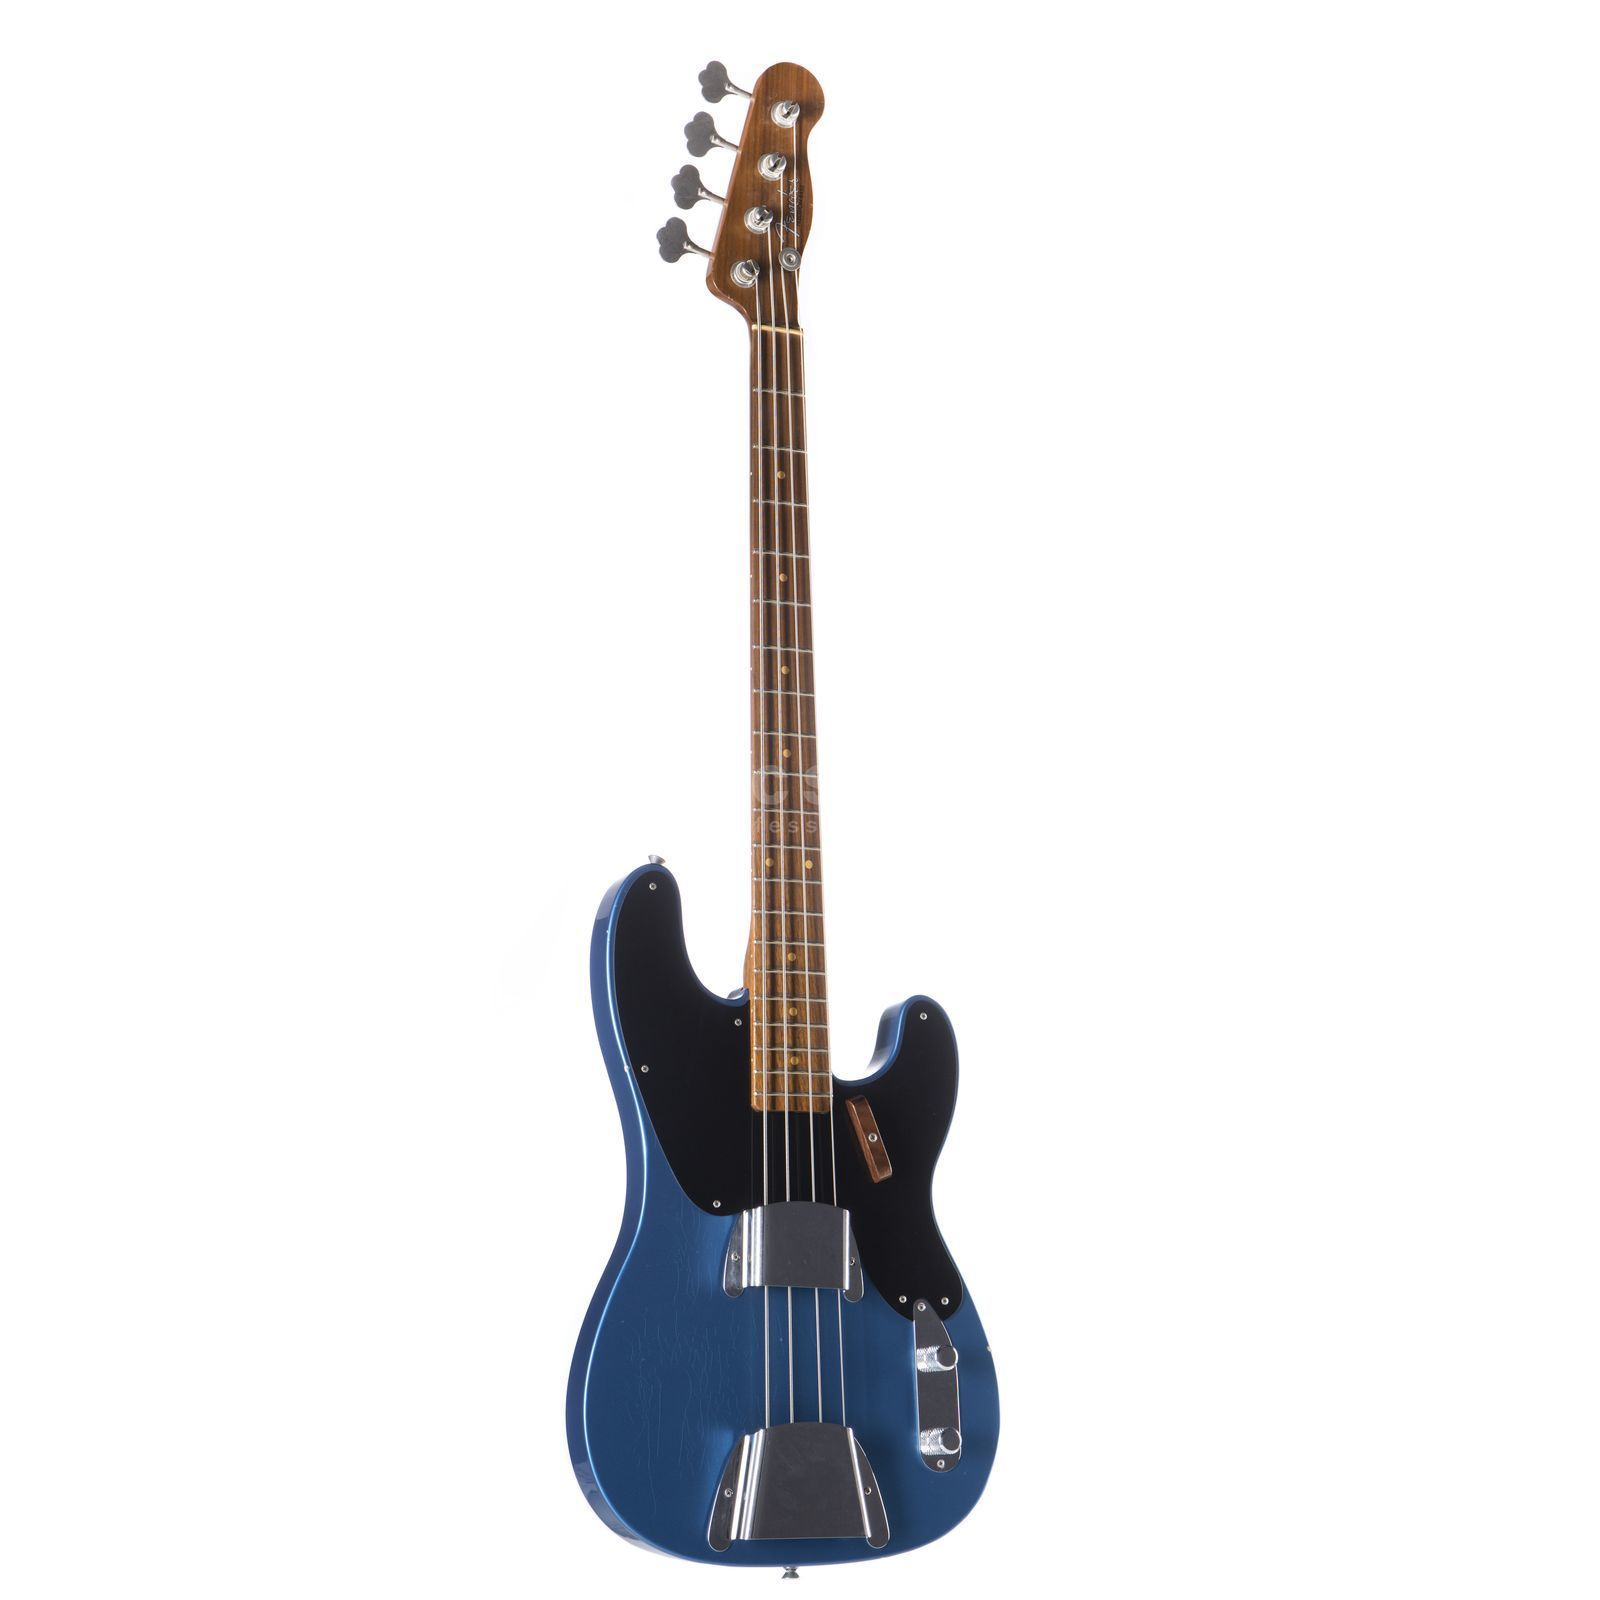 Fender 1951 Precision Bass Closet Classic Lake Placid Blue MB Dennis Galuszka #2759 Imagem do produto